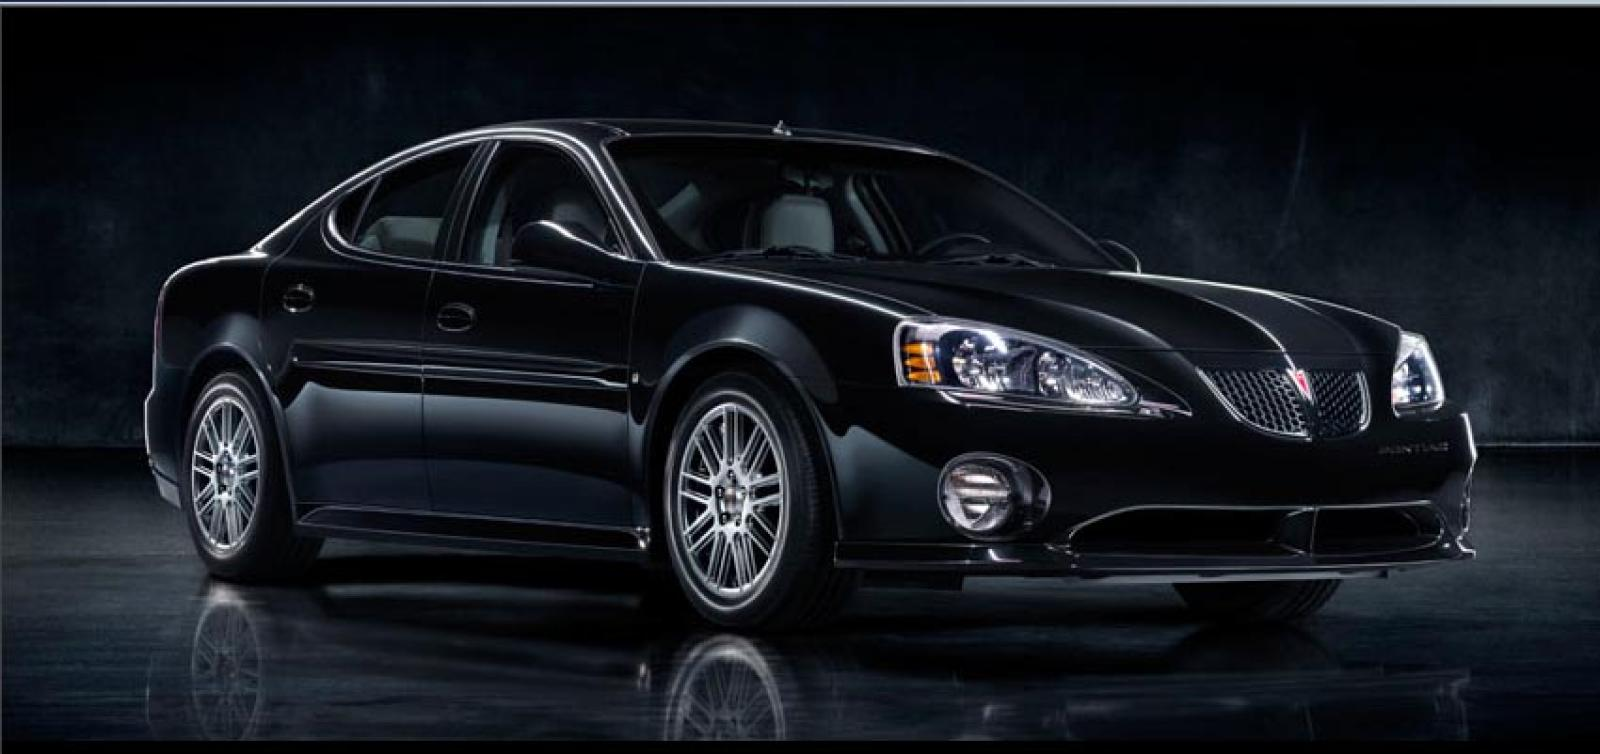 2007 Pontiac Grand Prix - Information and photos - Zomb Drive